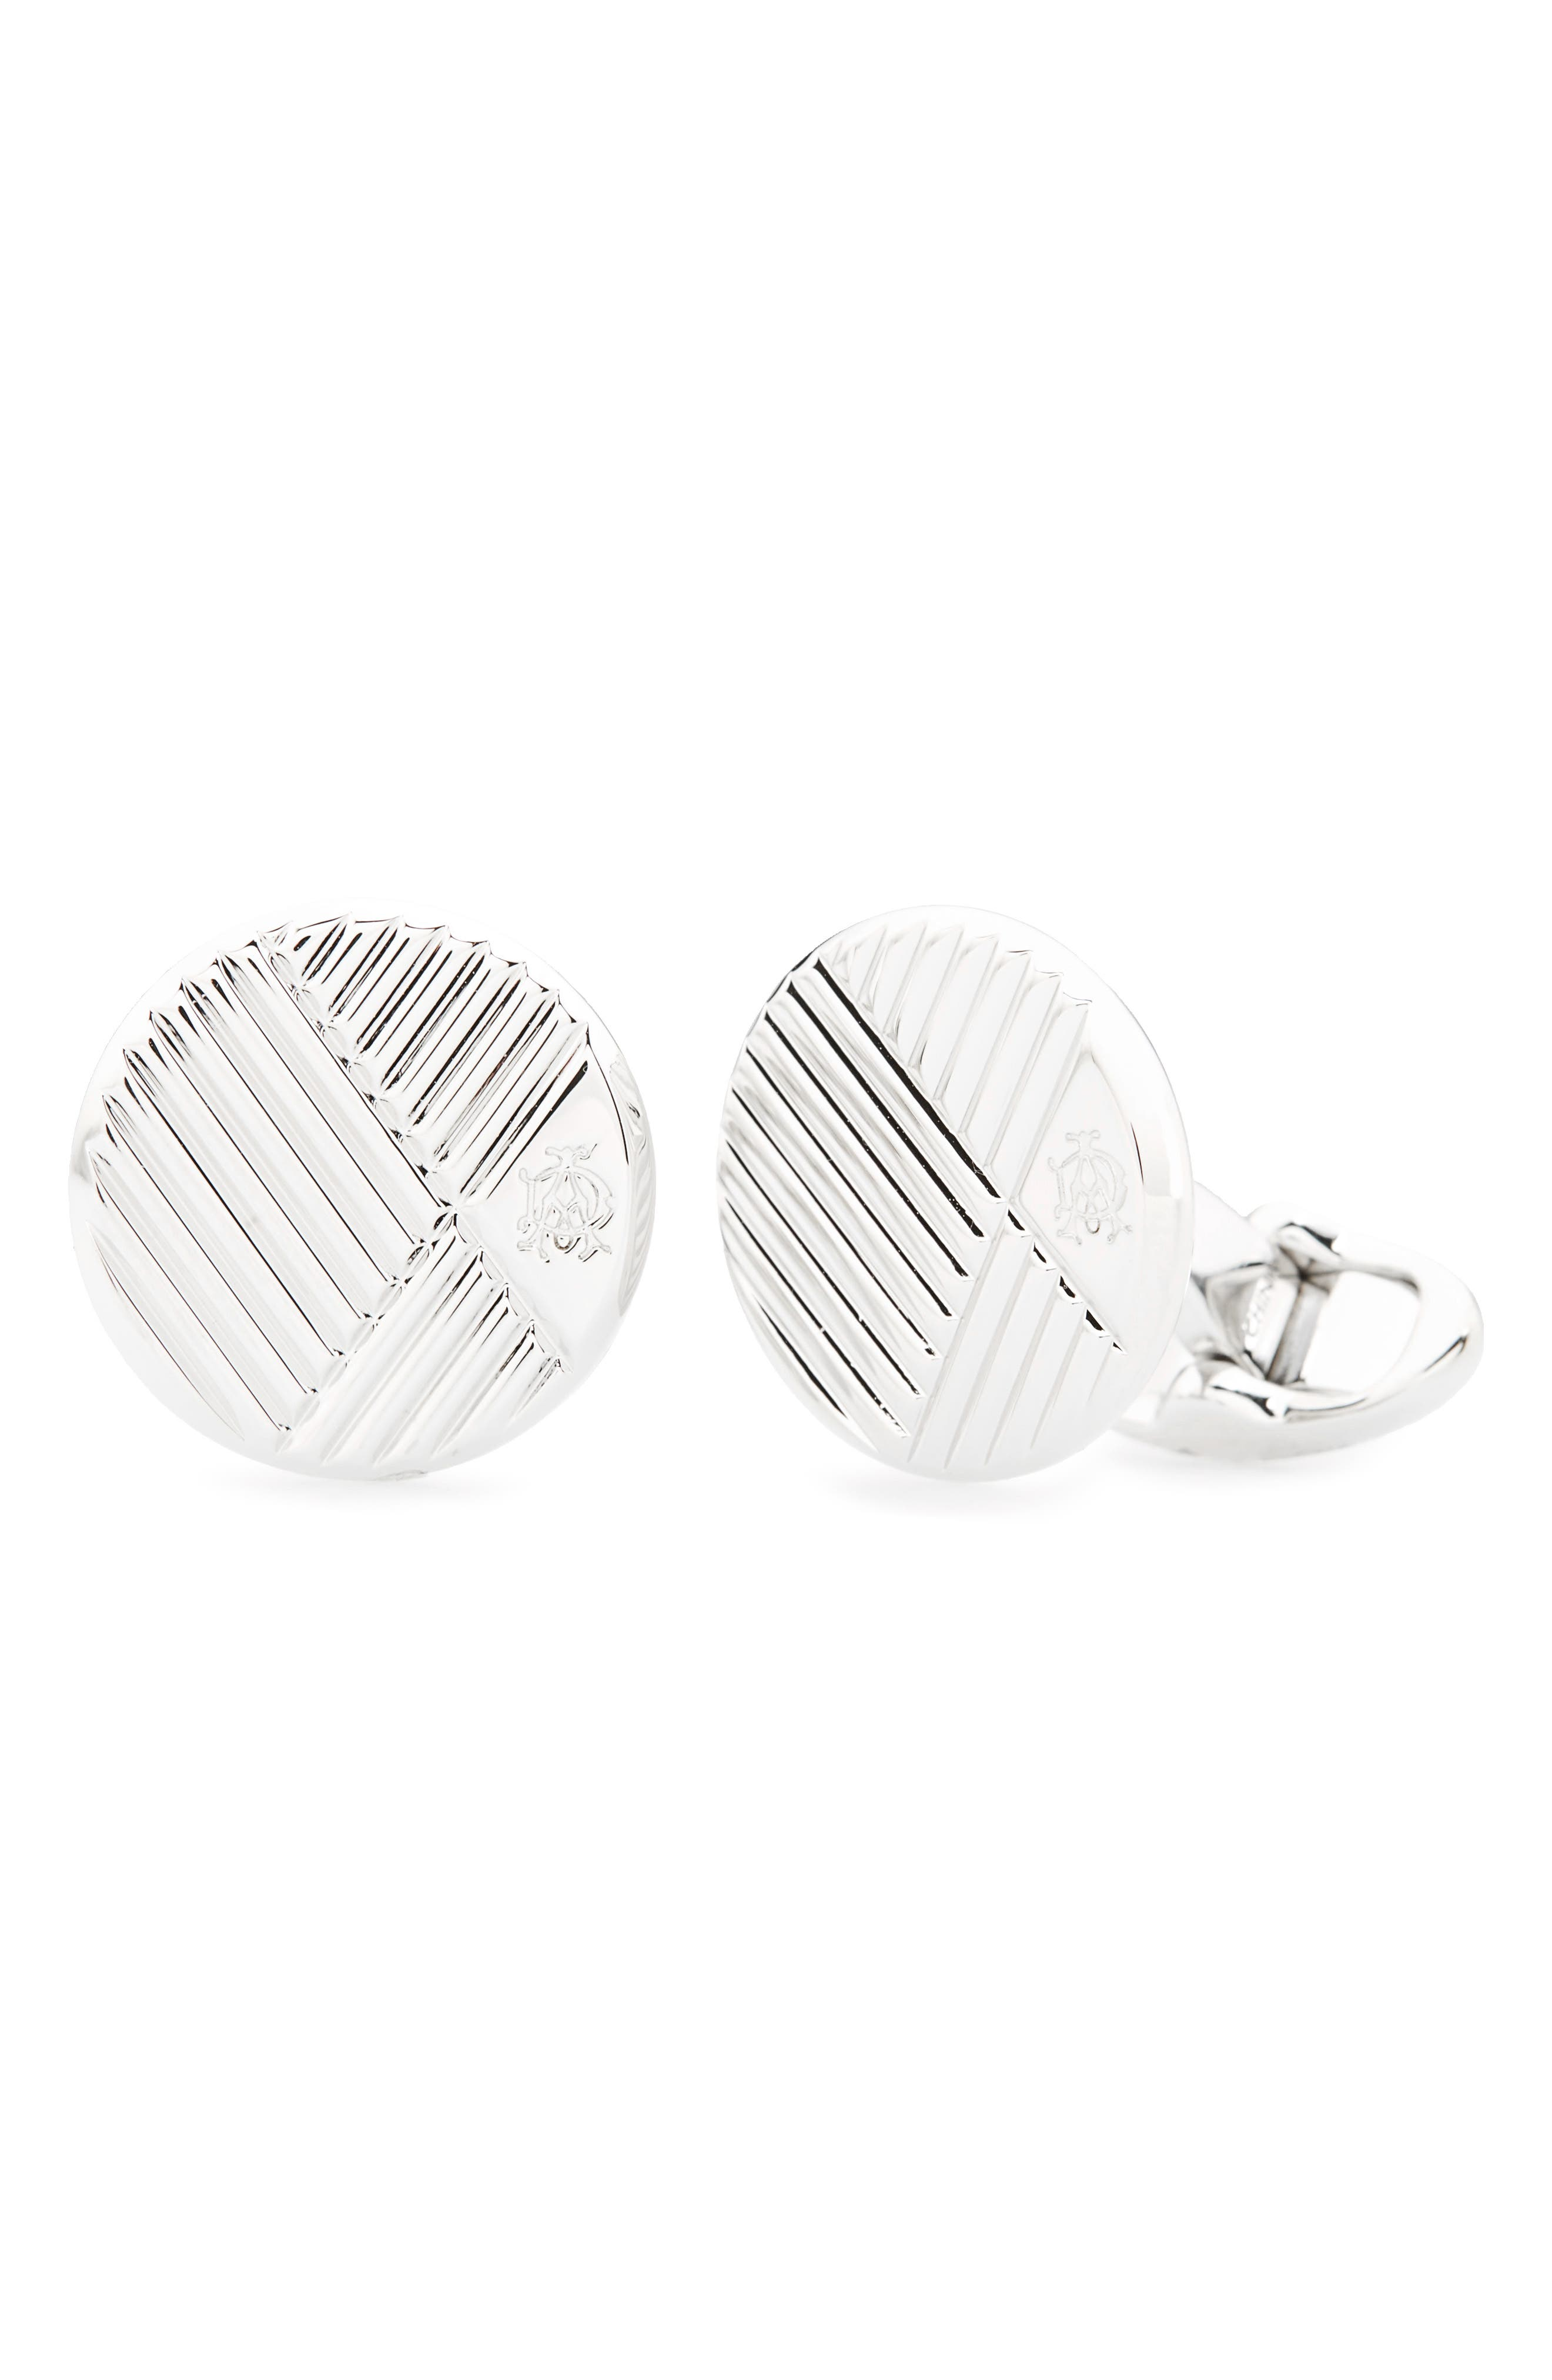 Round Diagonal Cuff Links,                             Main thumbnail 1, color,                             040